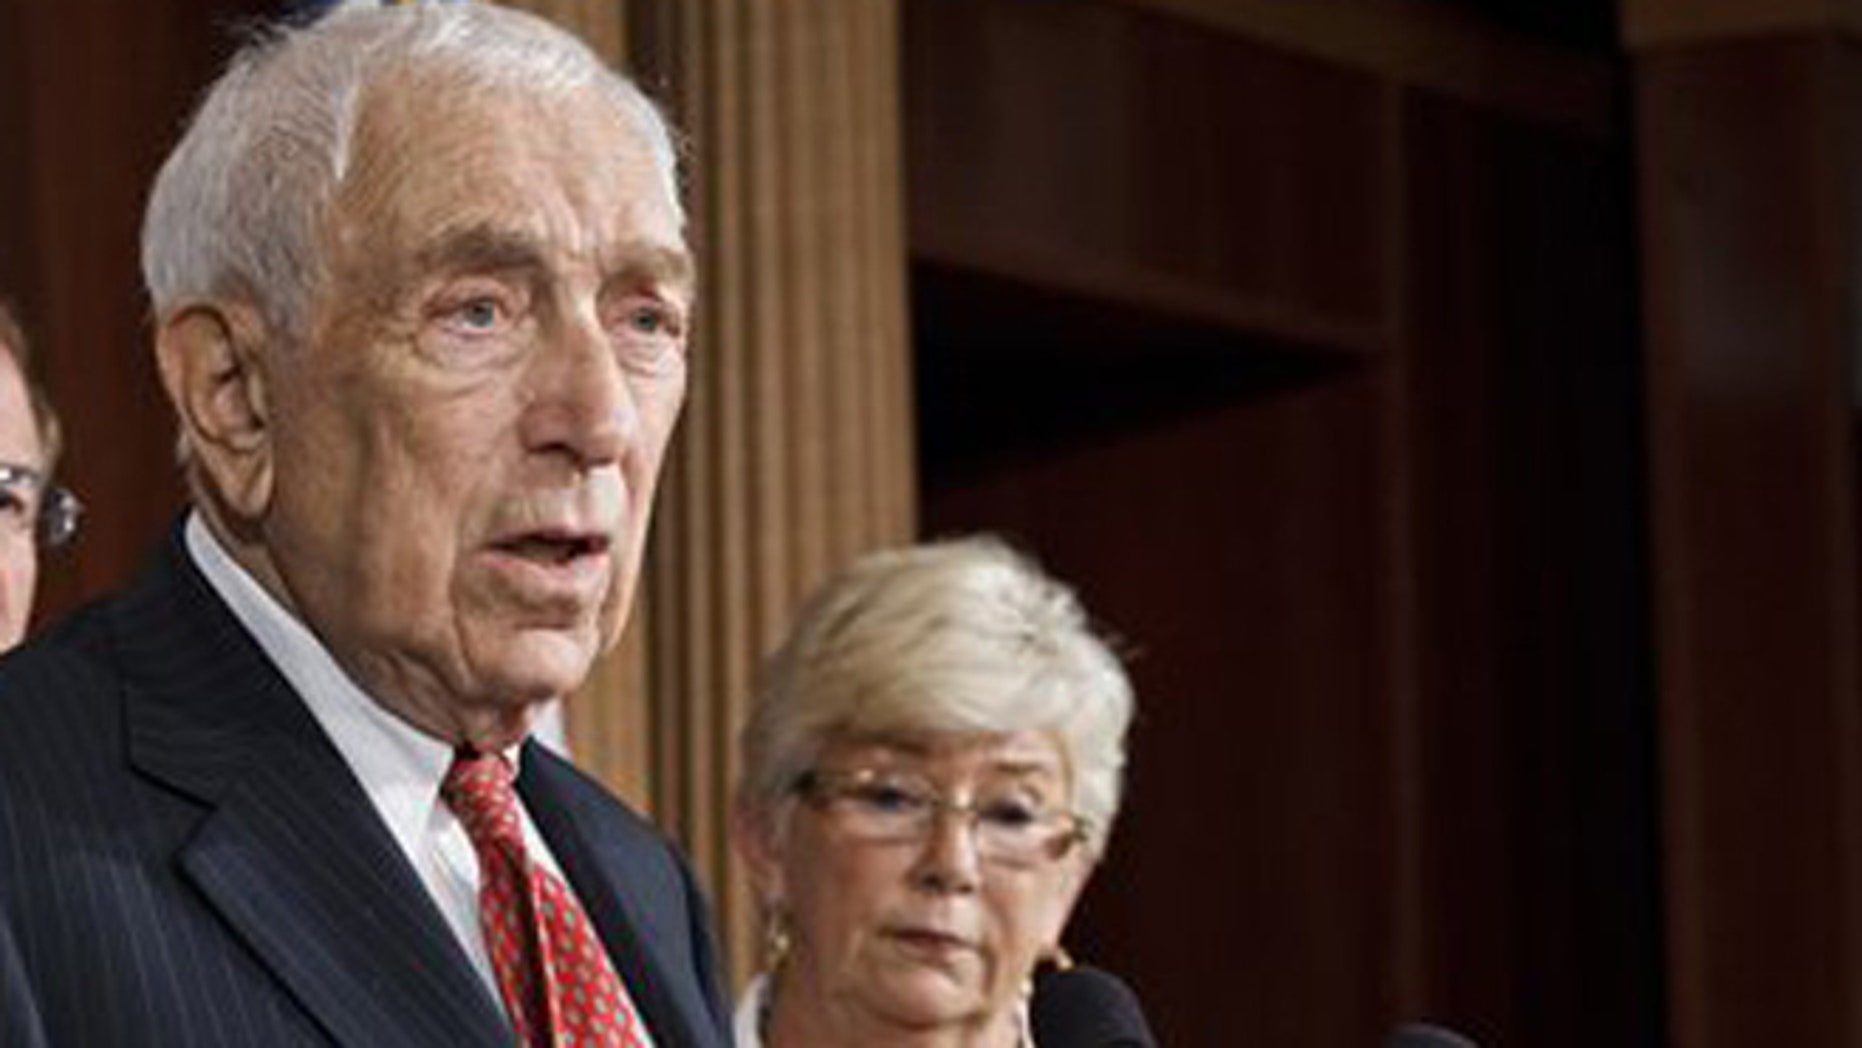 July 24, 2012: Sen. Frank Lautenberg, D-N.J., and Rep. Carolyn McCarthy, D-N.Y., at  a news conference on Capitol Hill in Washington.